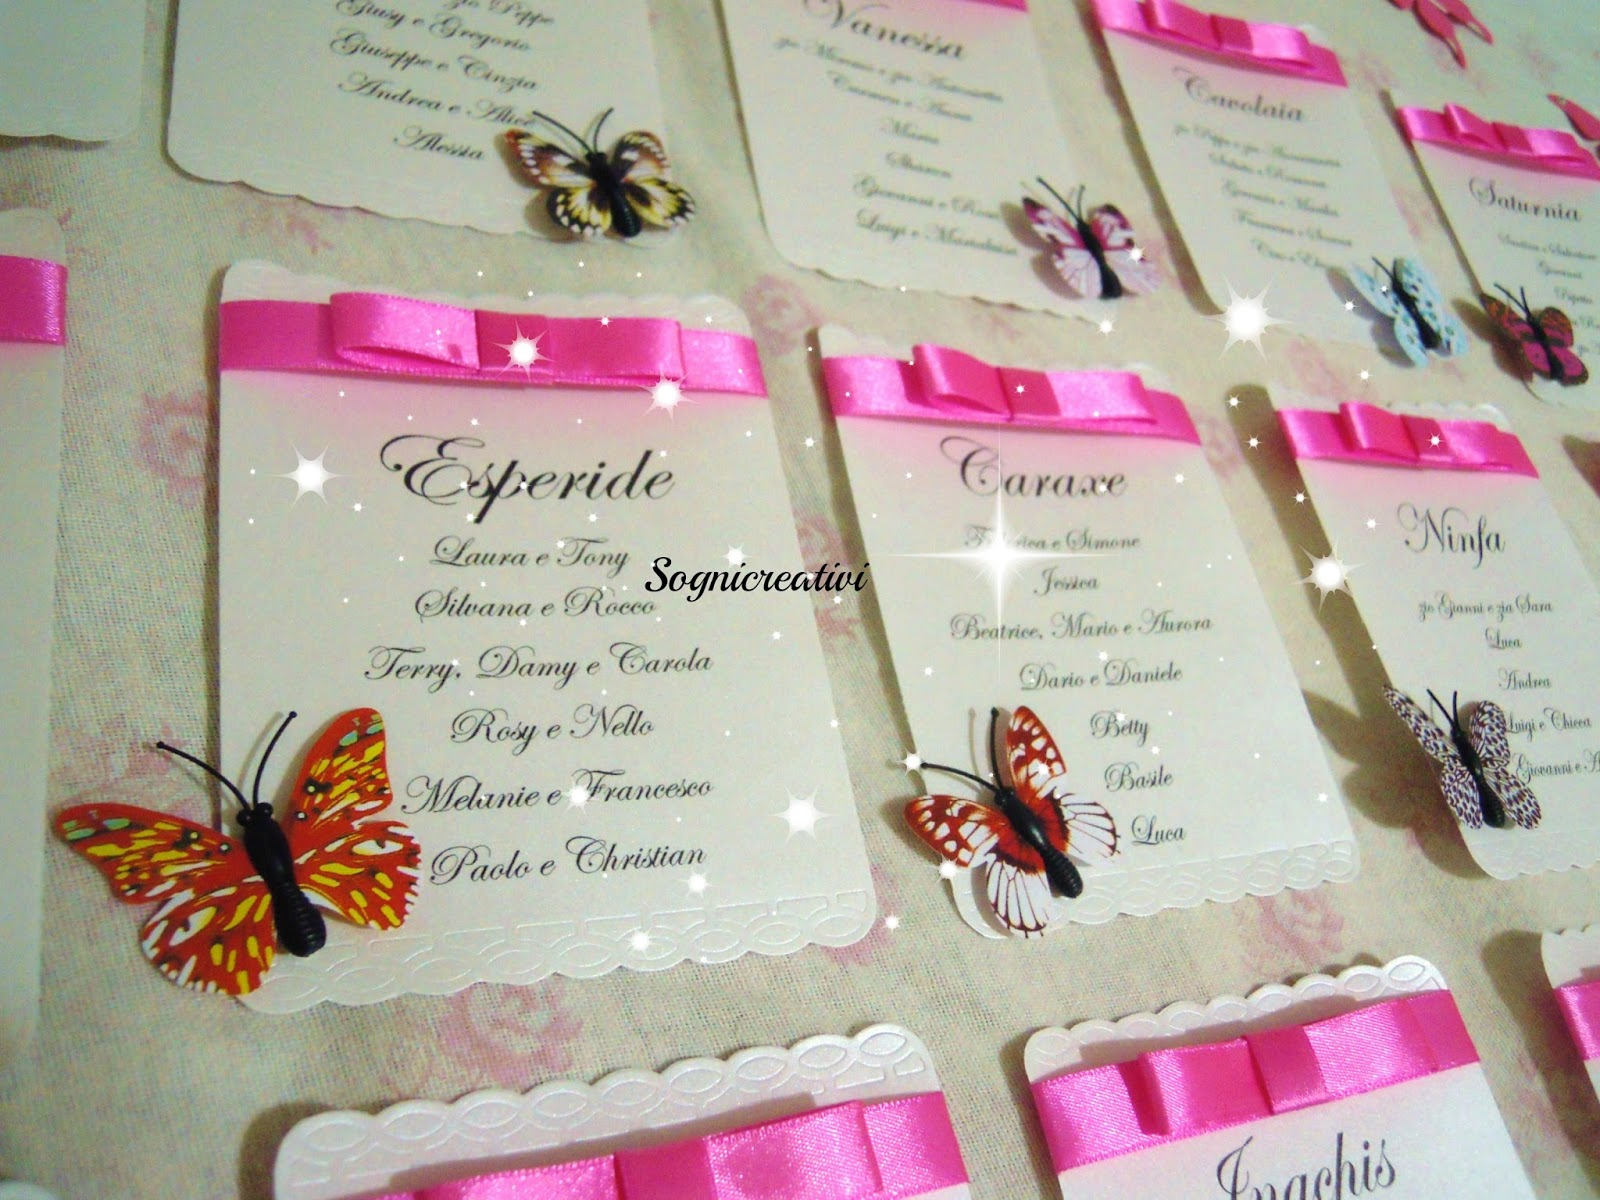 Famoso Partecipazioni Sognicreativi Wedding and Events: Cartellini  WI03